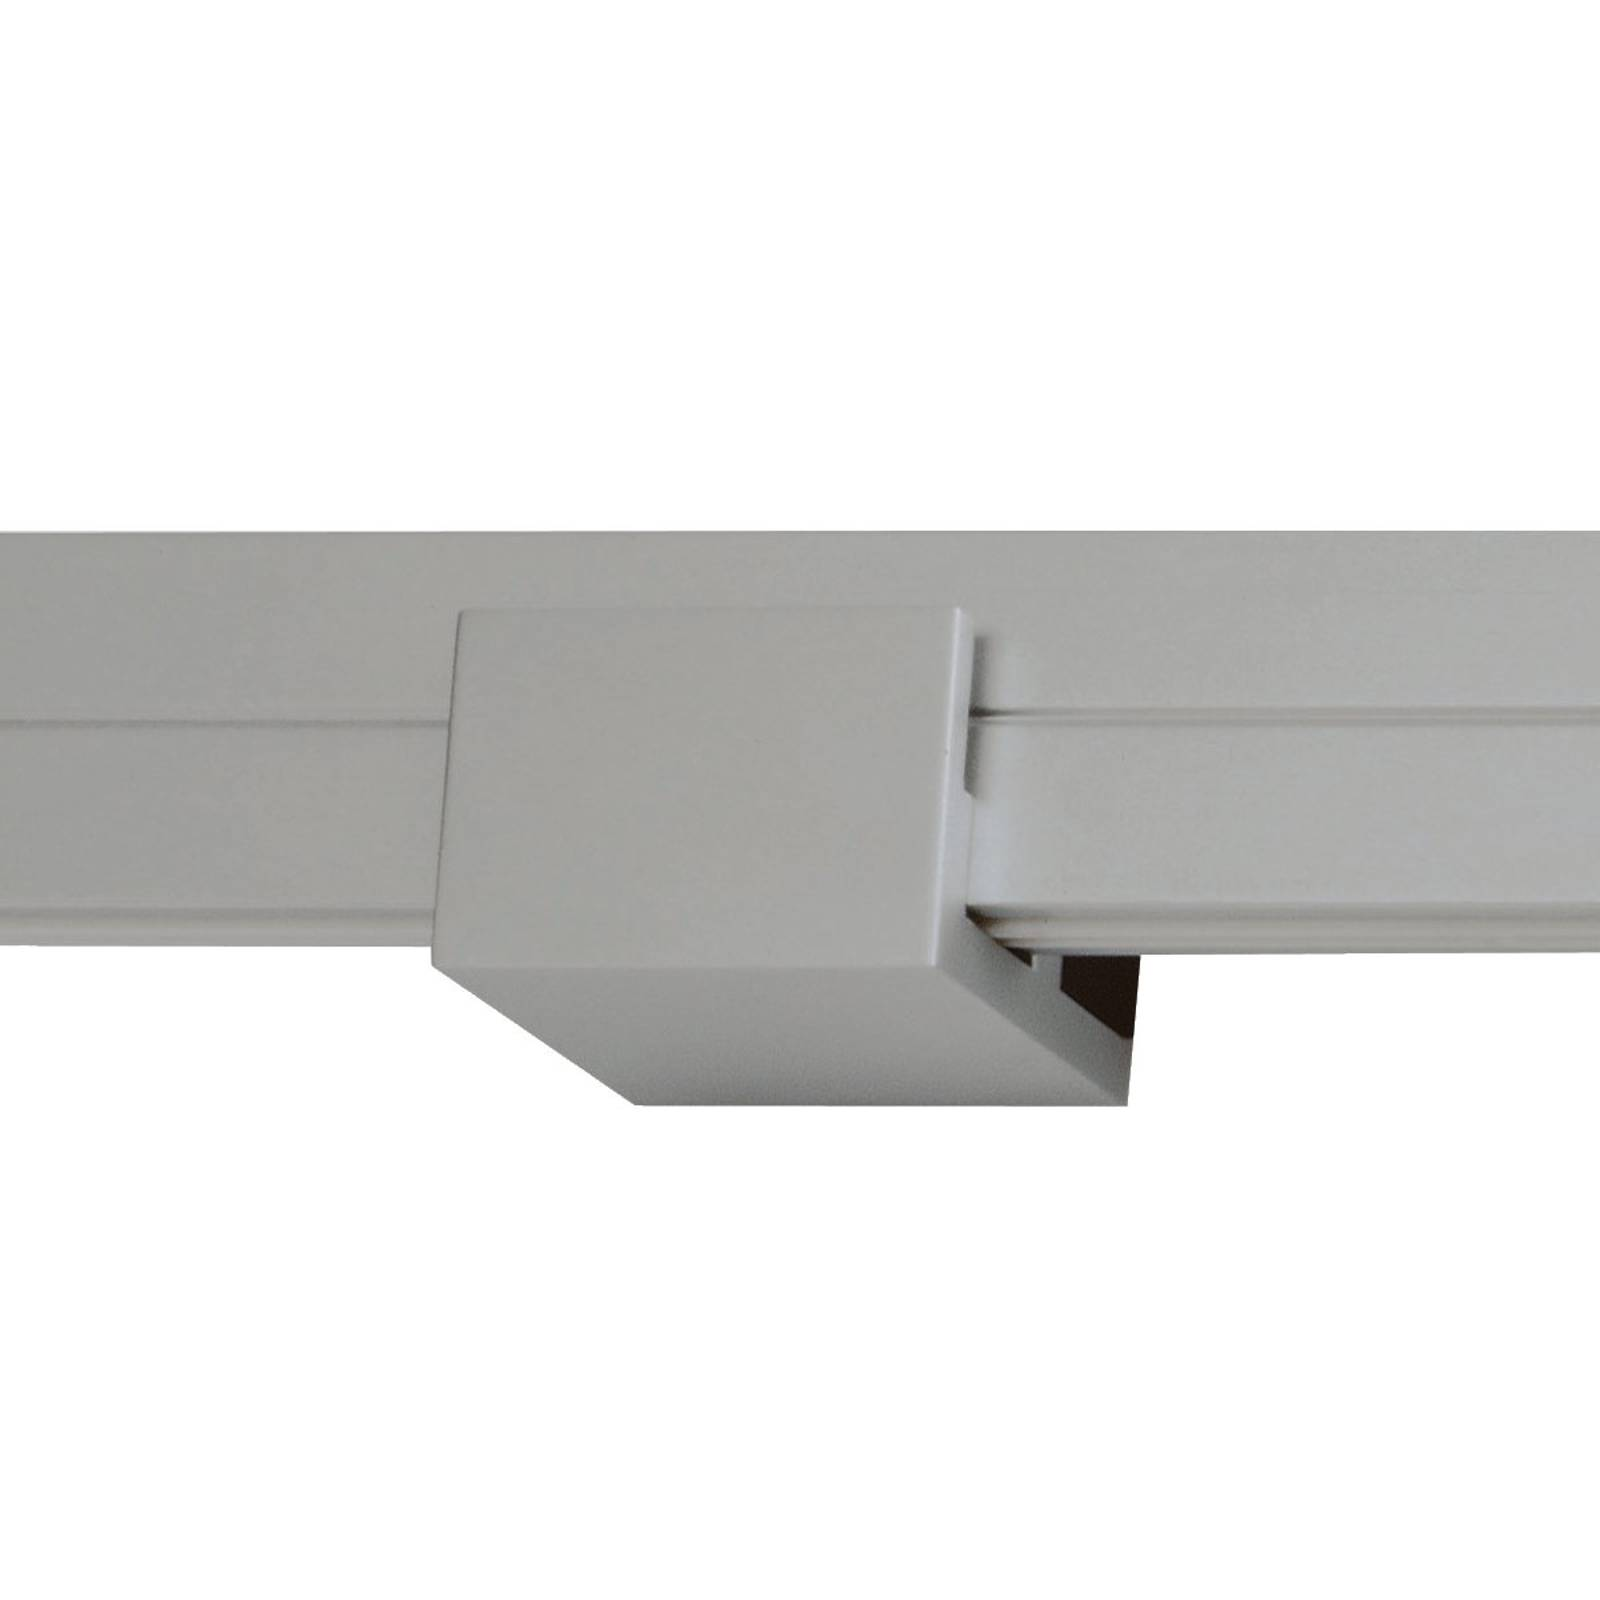 Wall support for track lighting system Check-In from Oligo